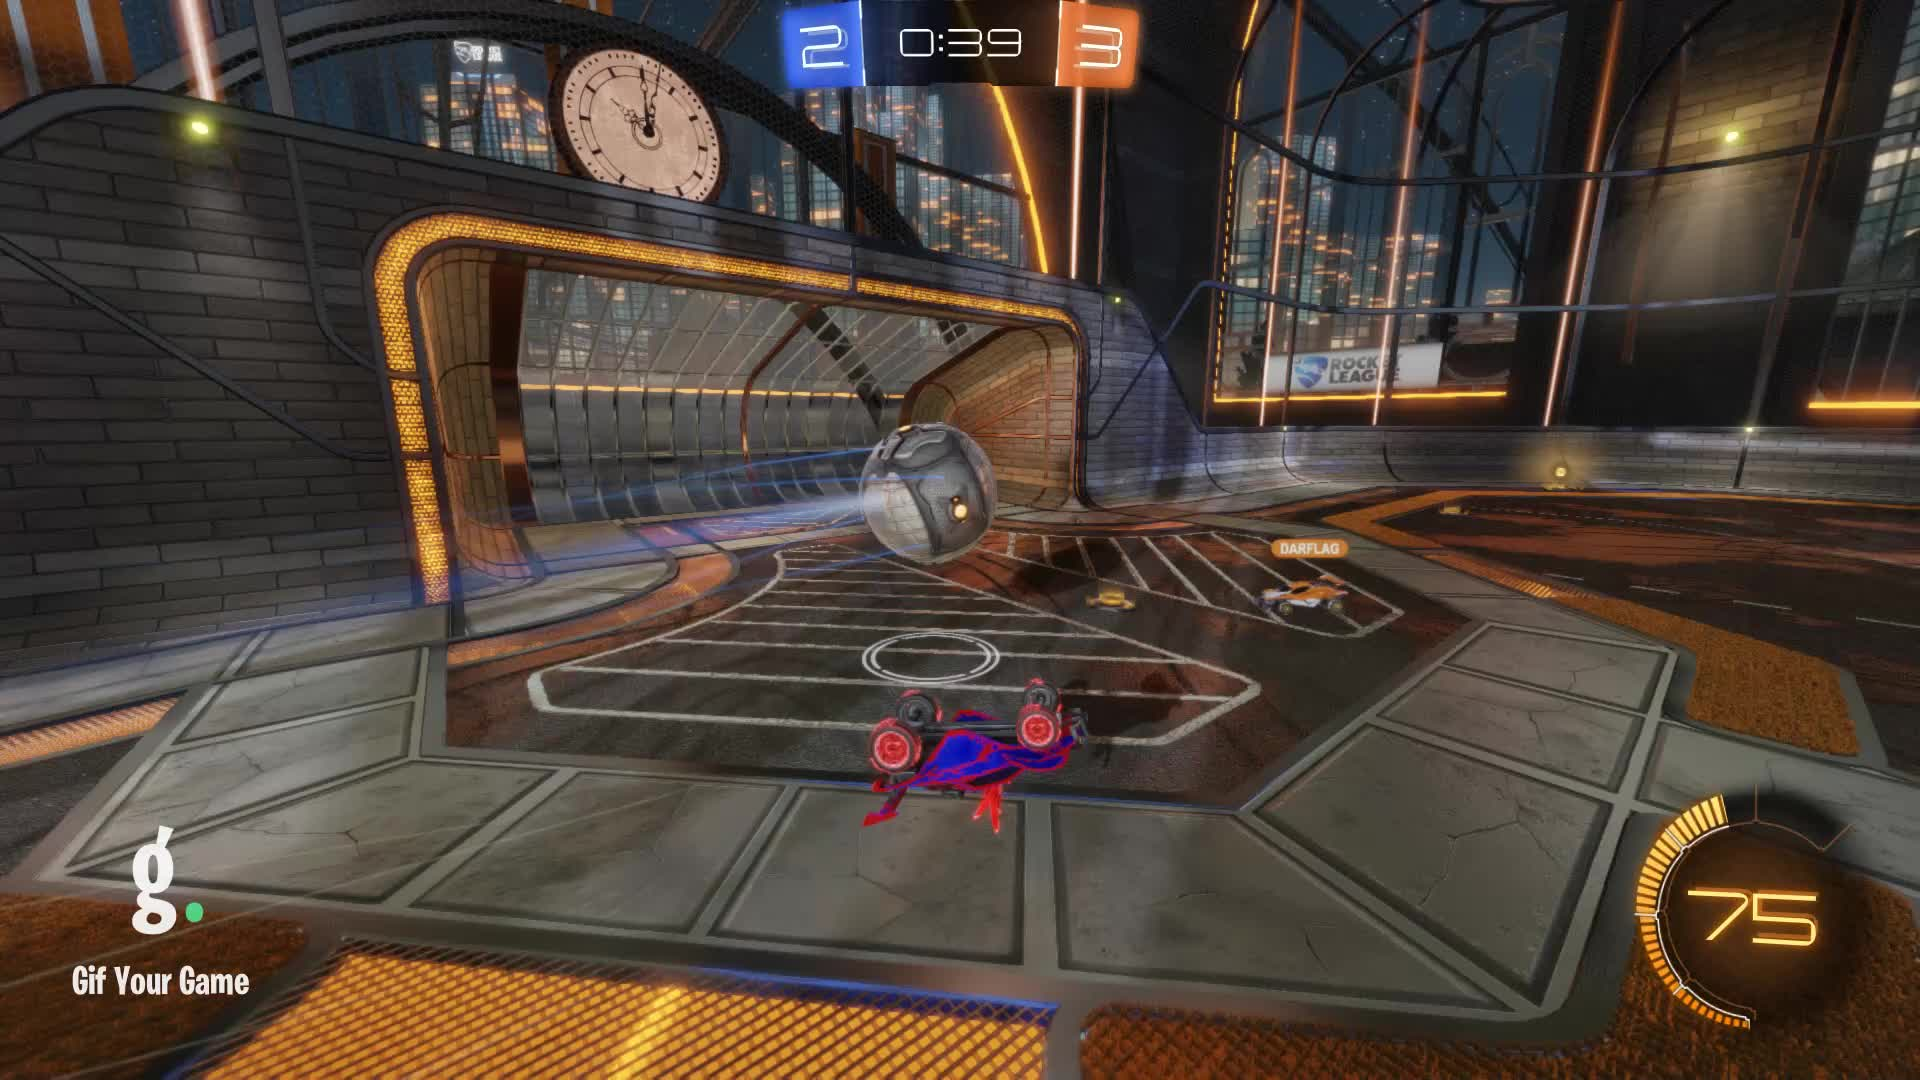 Gif Your Game, GifYourGame, Goal, Rocket League, RocketLeague, Timper [NL], Goal 6: Timper [NL] GIFs